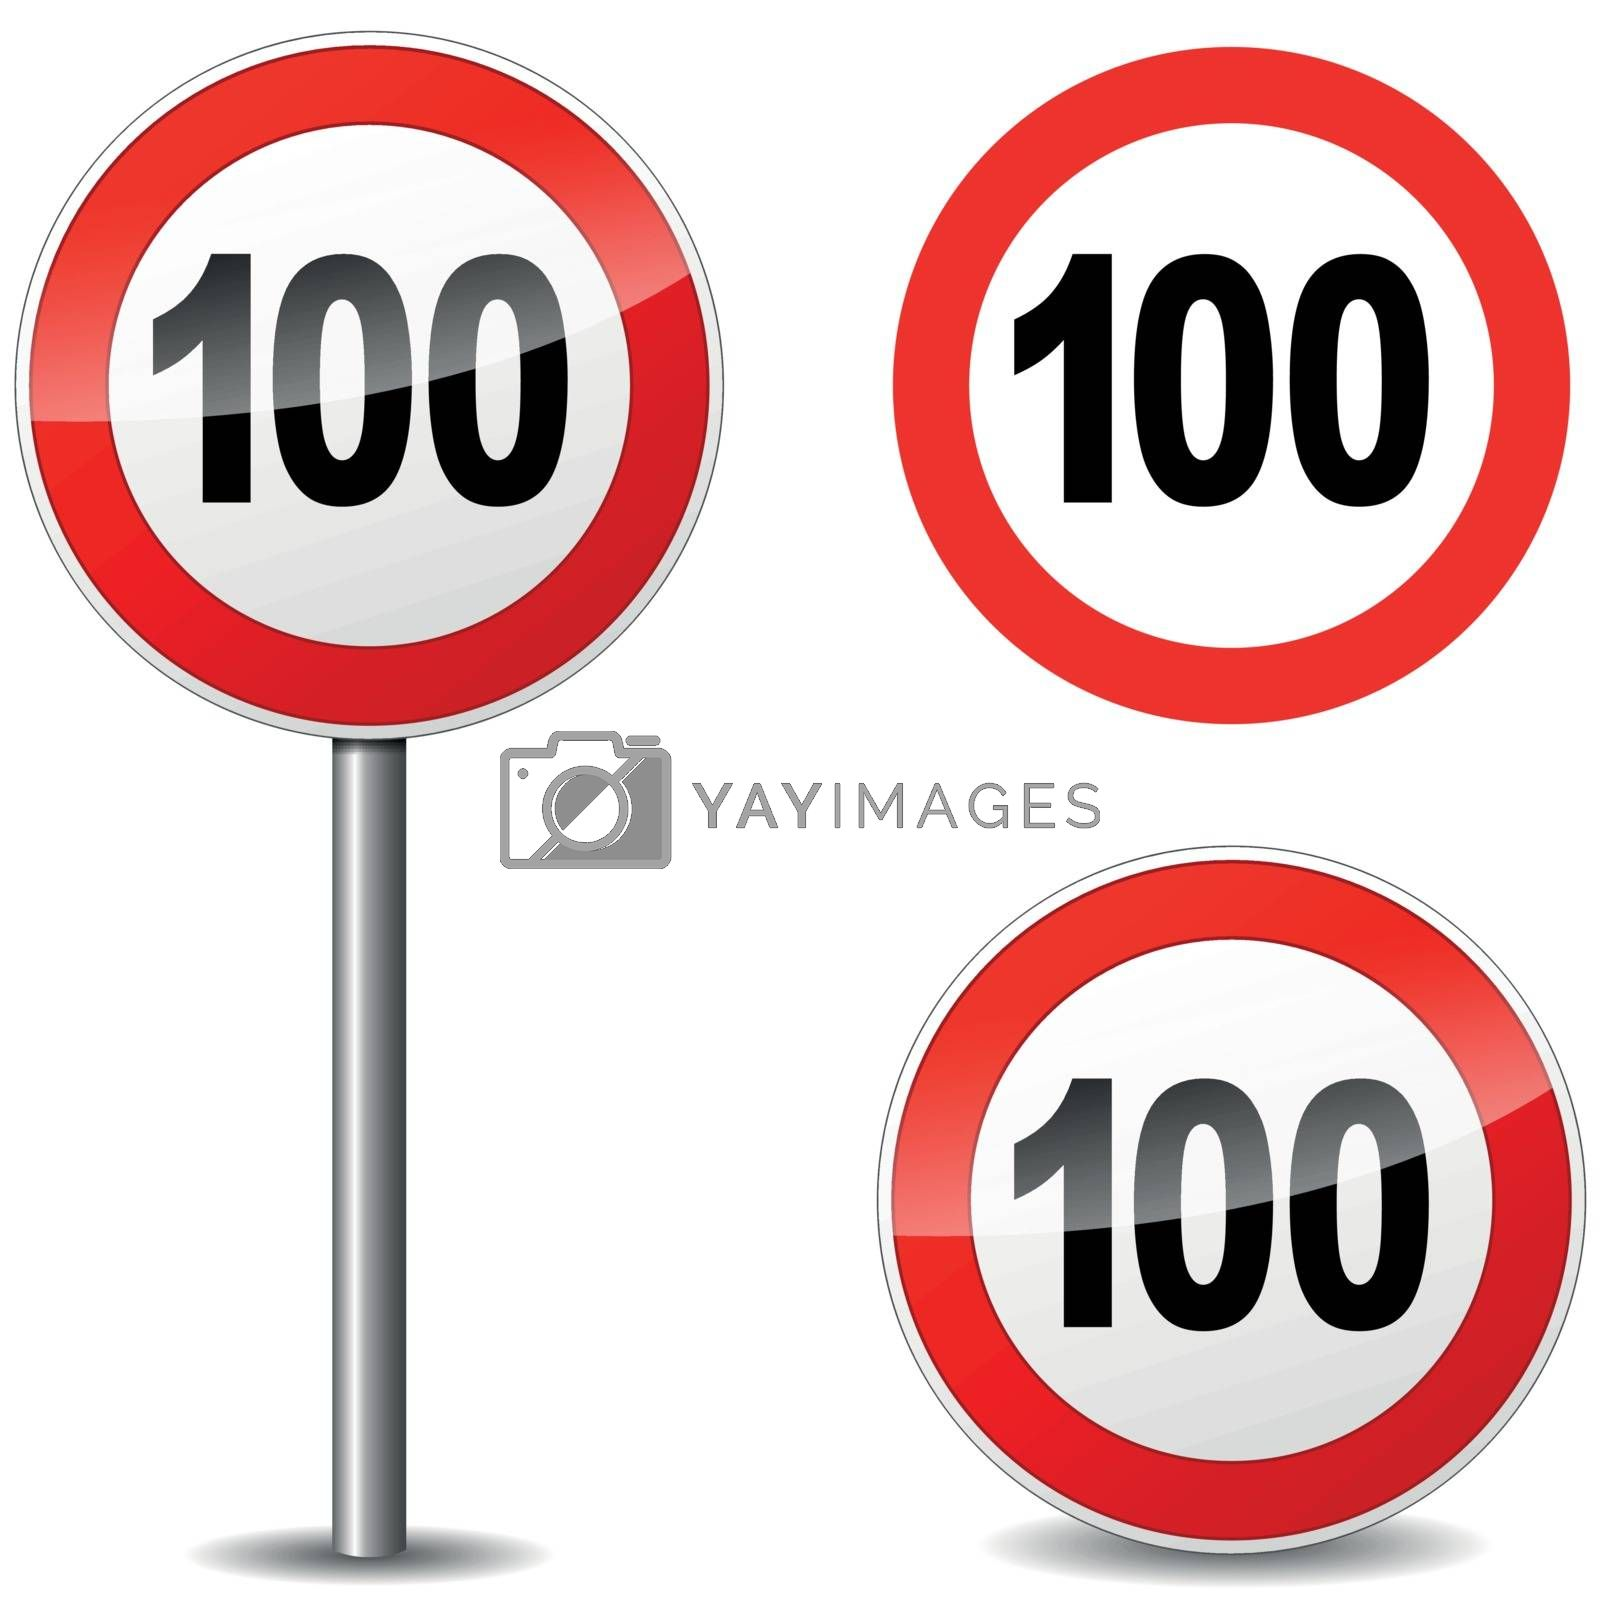 Royalty free image of Vector hundred sign by nickylarson974